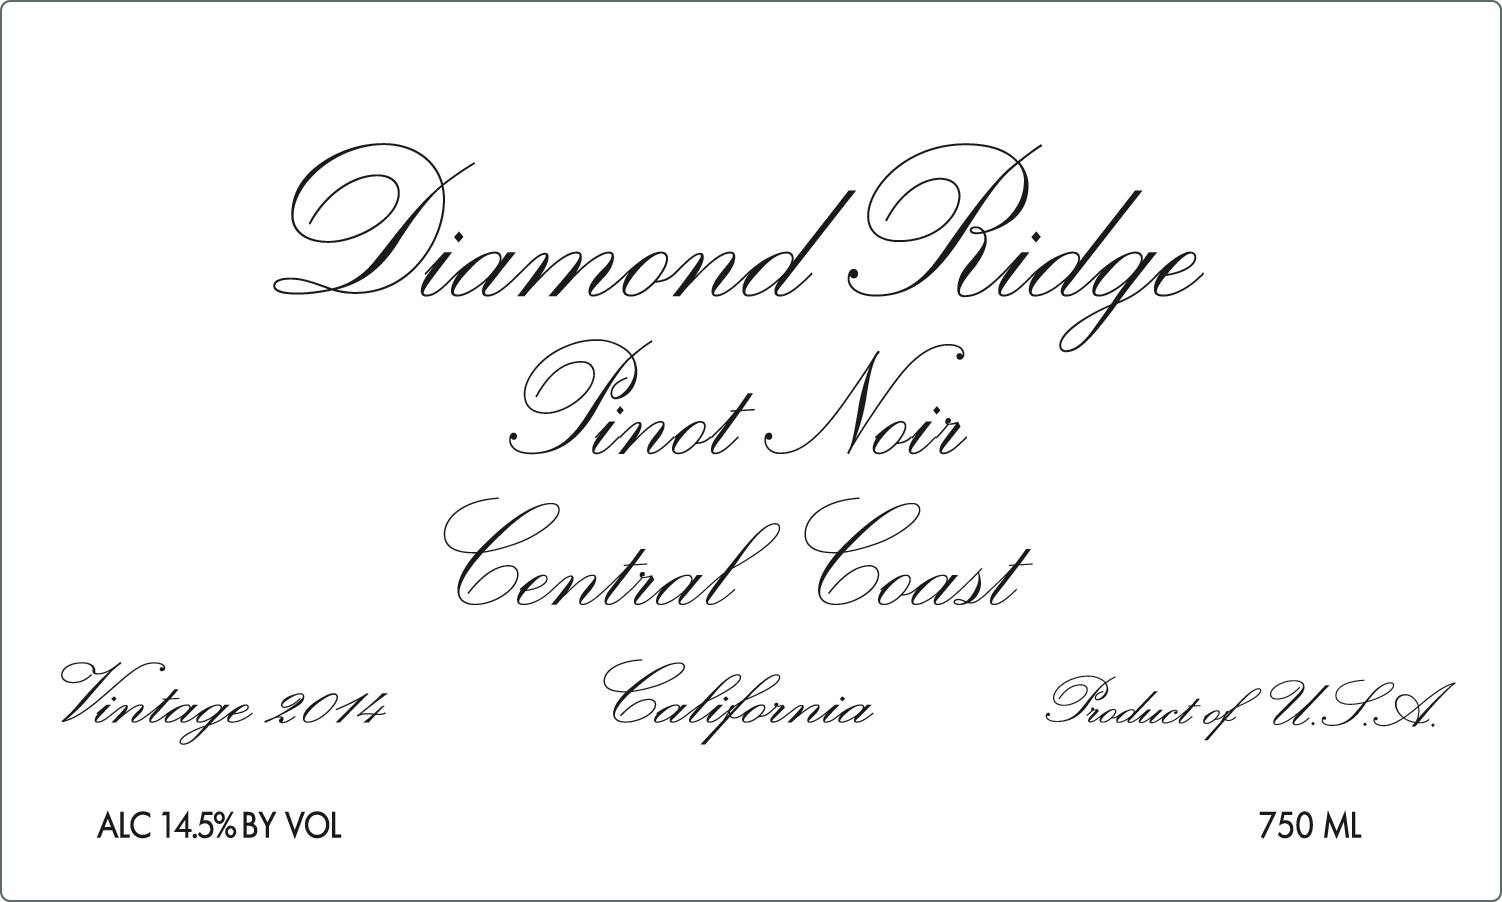 2014 Diamond Ridge Pinot Noir